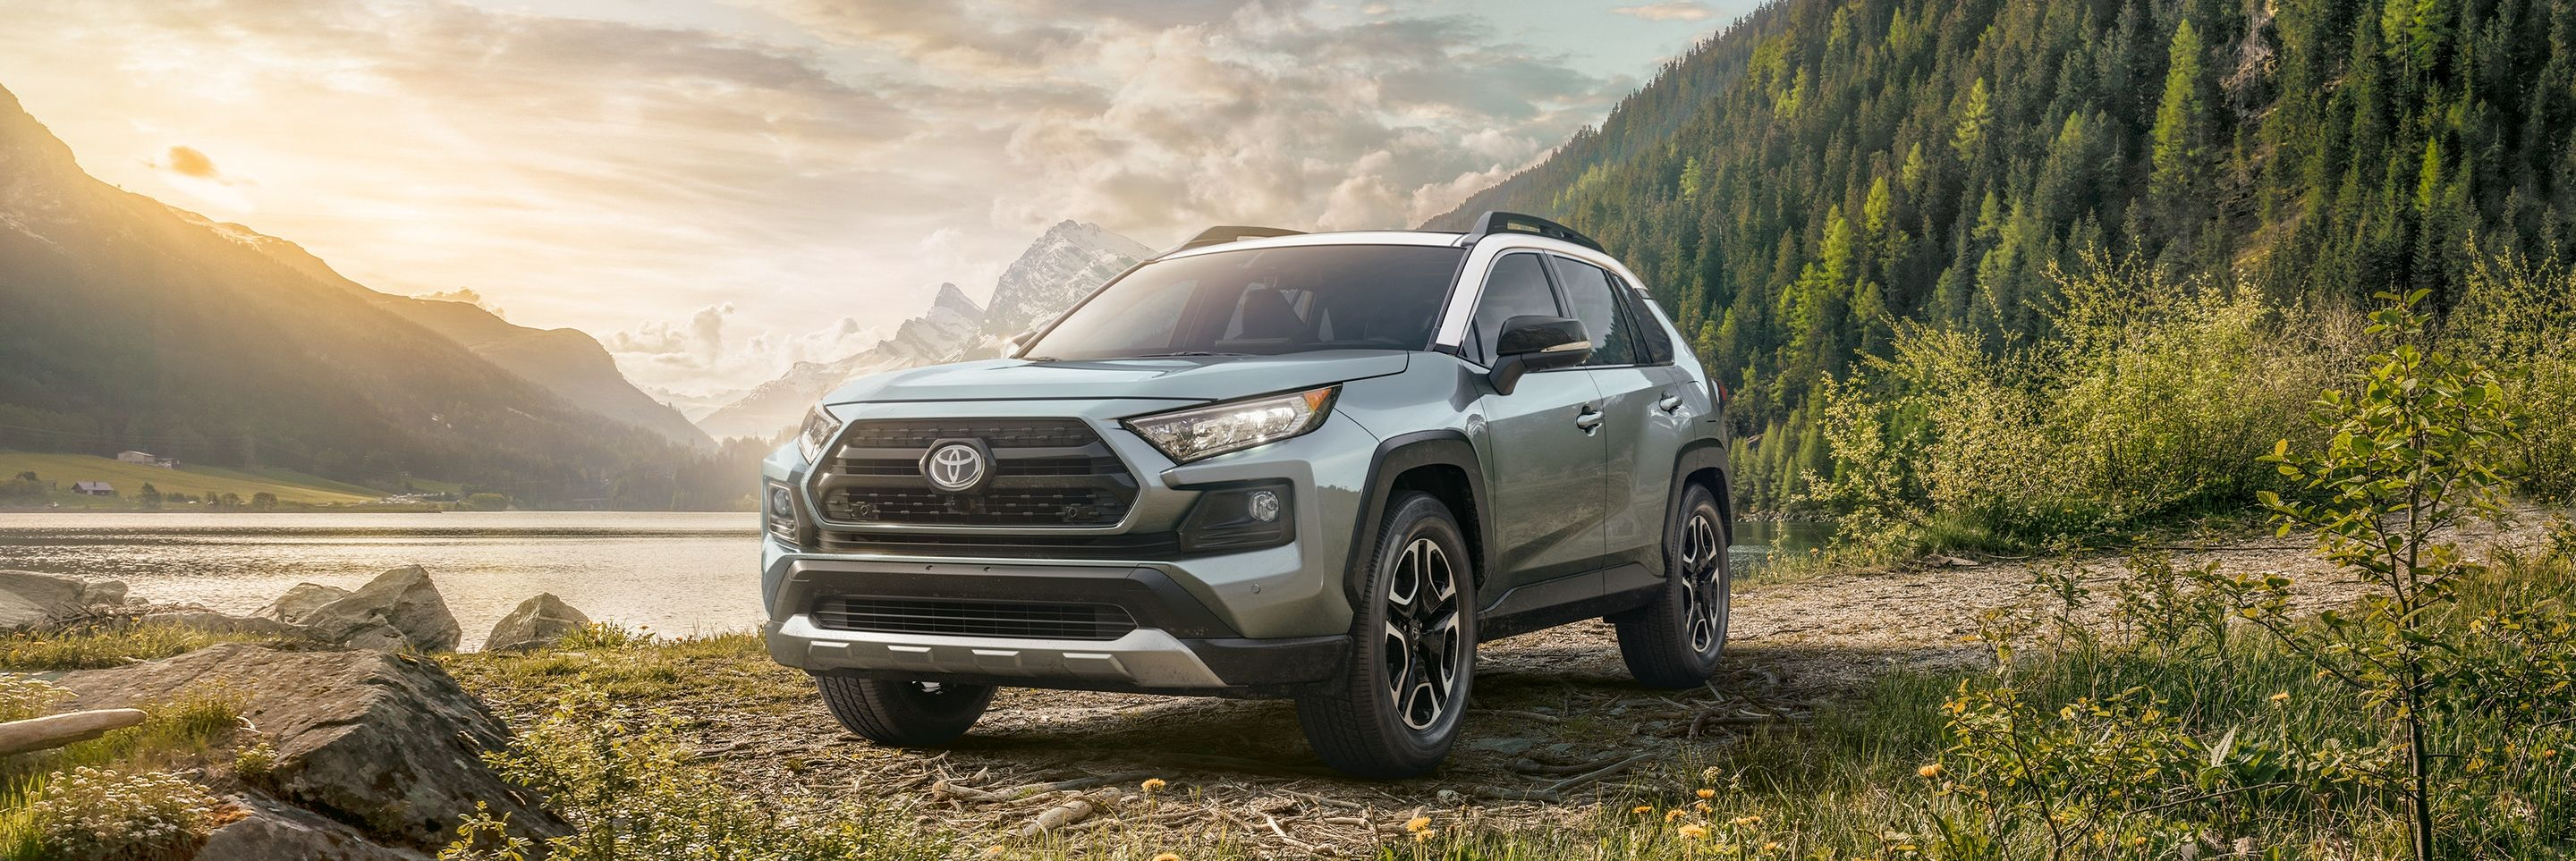 2019 Toyota RAV4 for Sale near Canton, MI